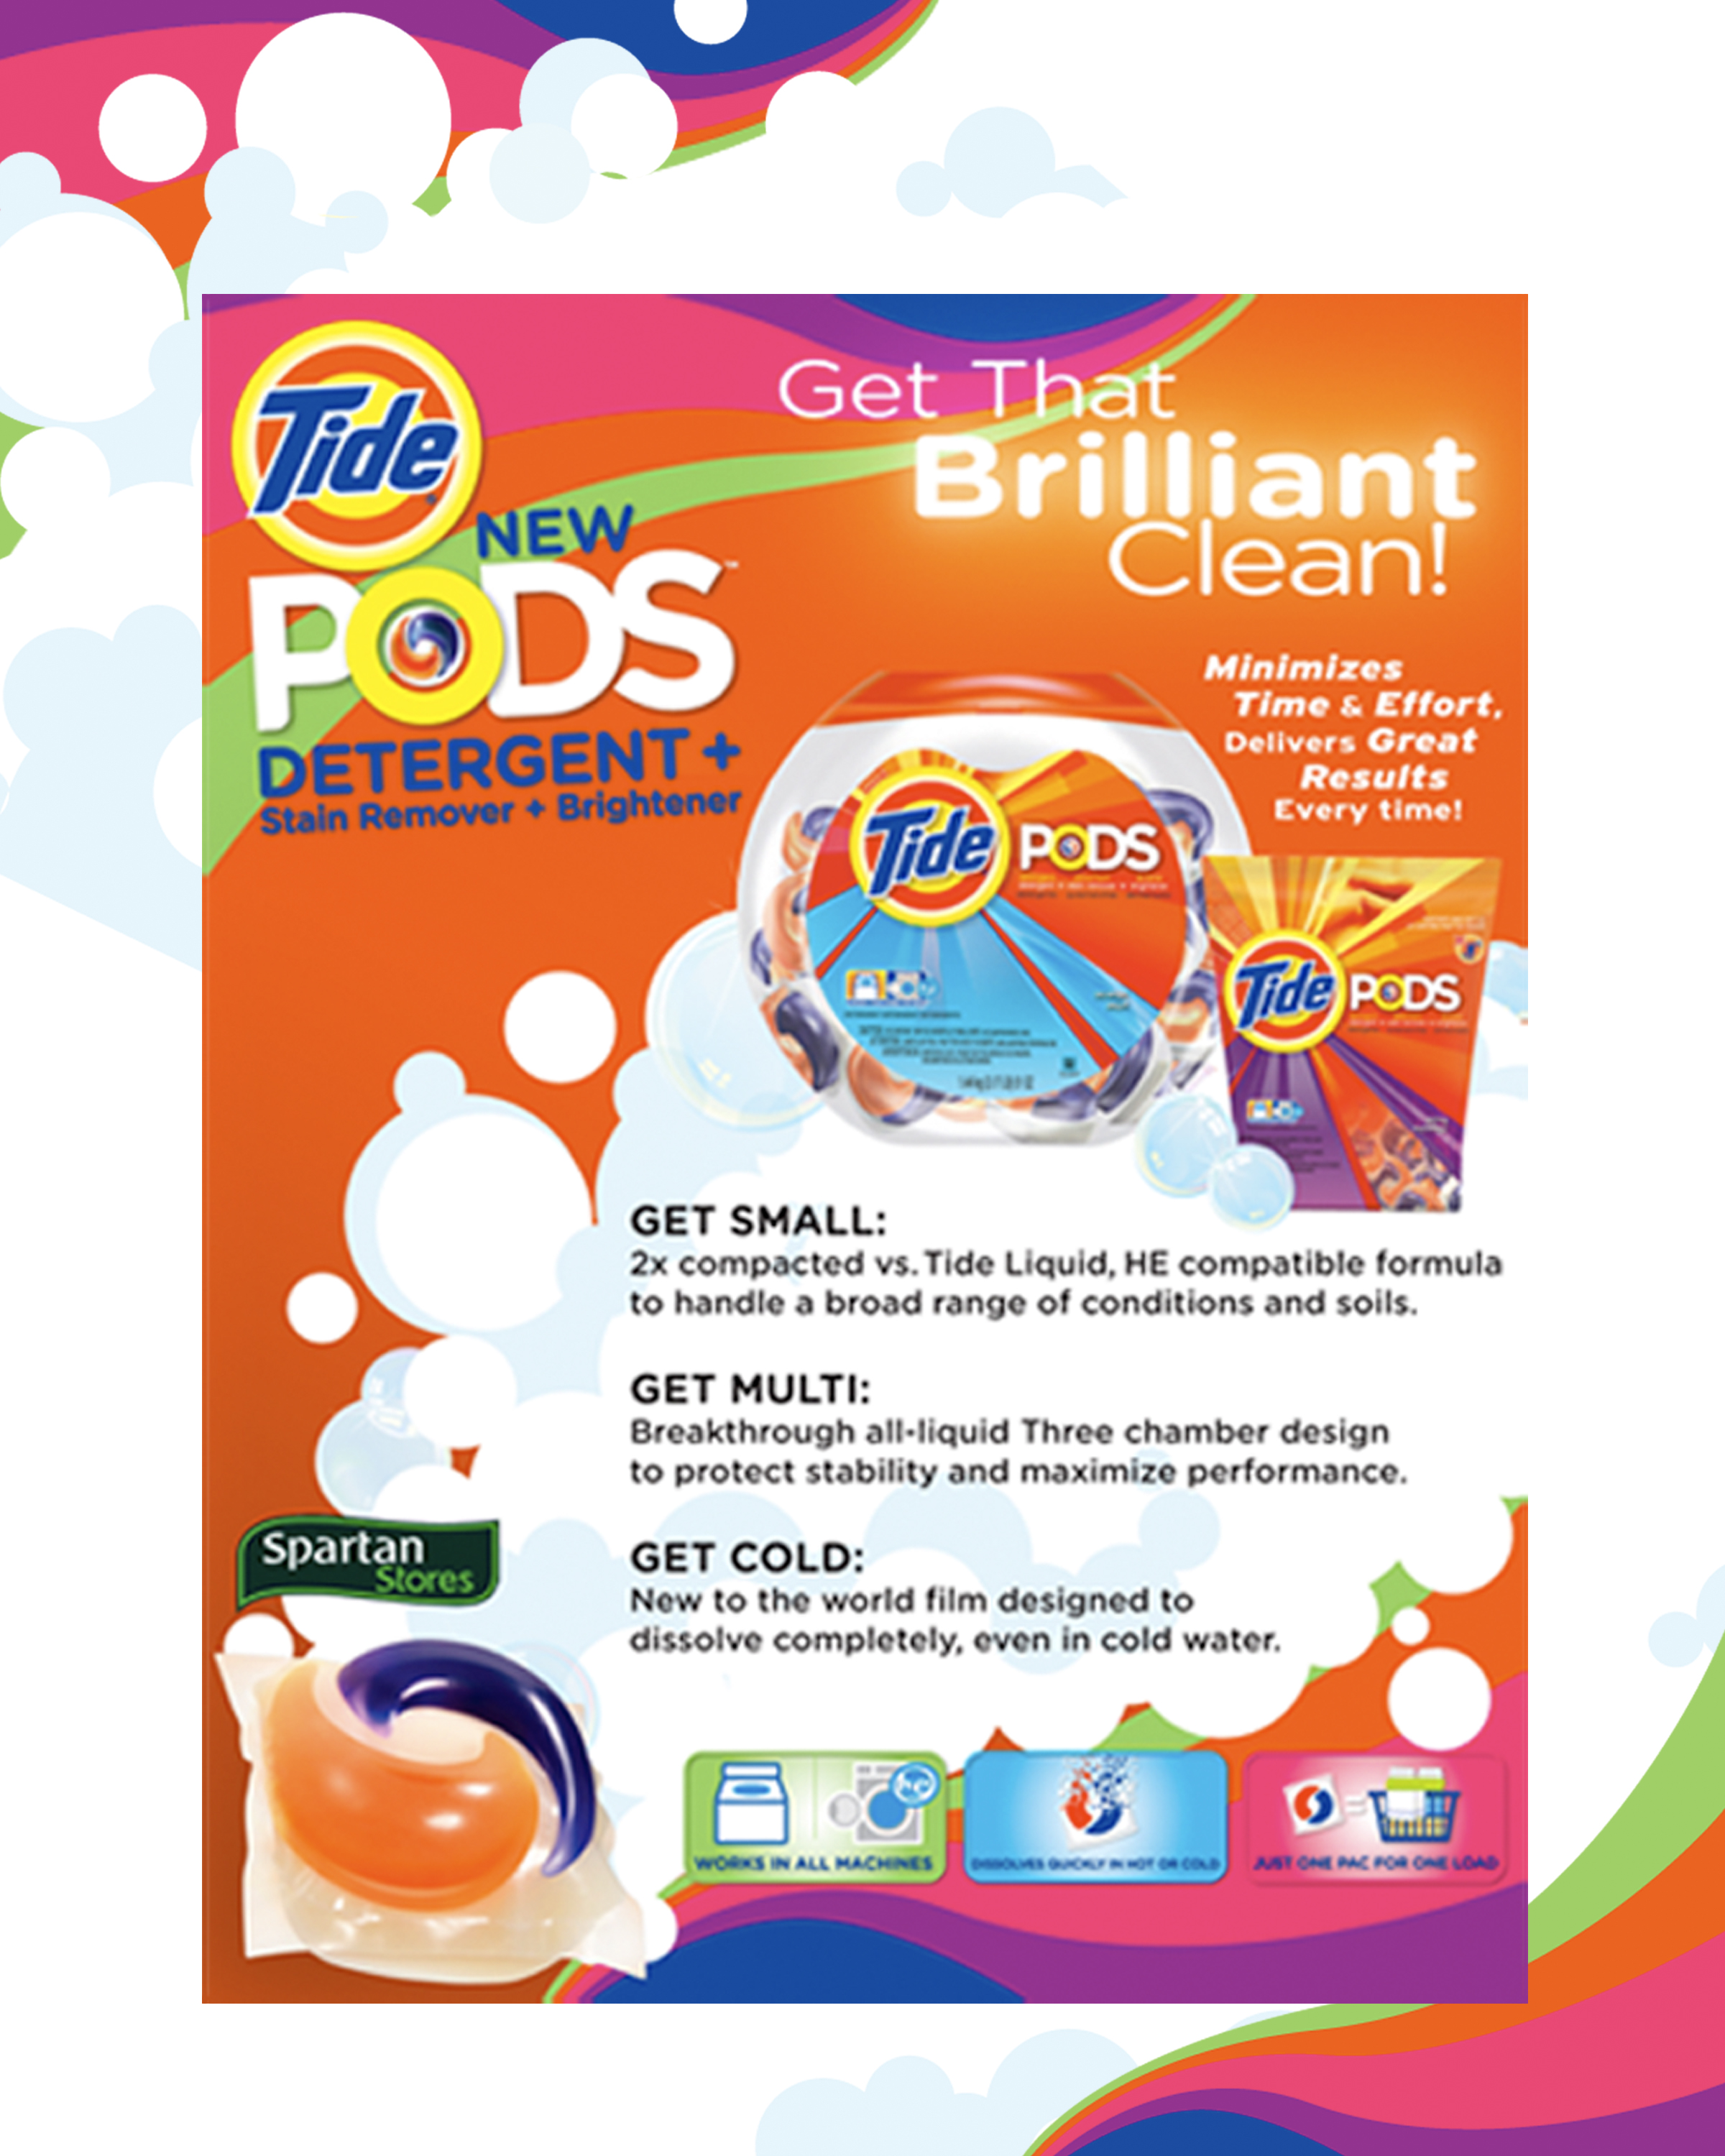 Tide pods coupons 2019